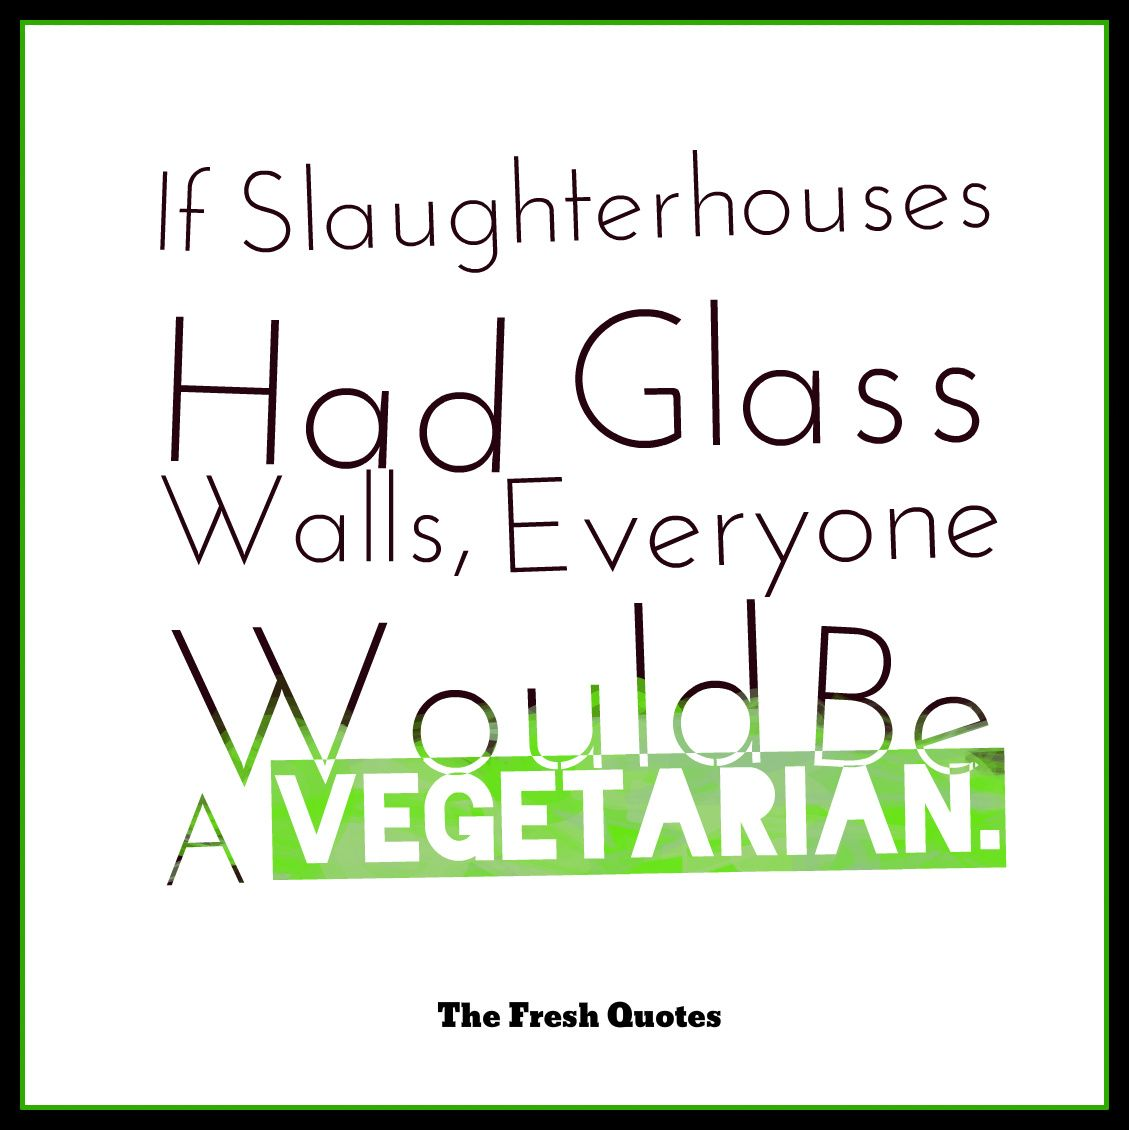 Vegan Quotes Image Result For Vegetarian Quotes  Quotes  Pinterest